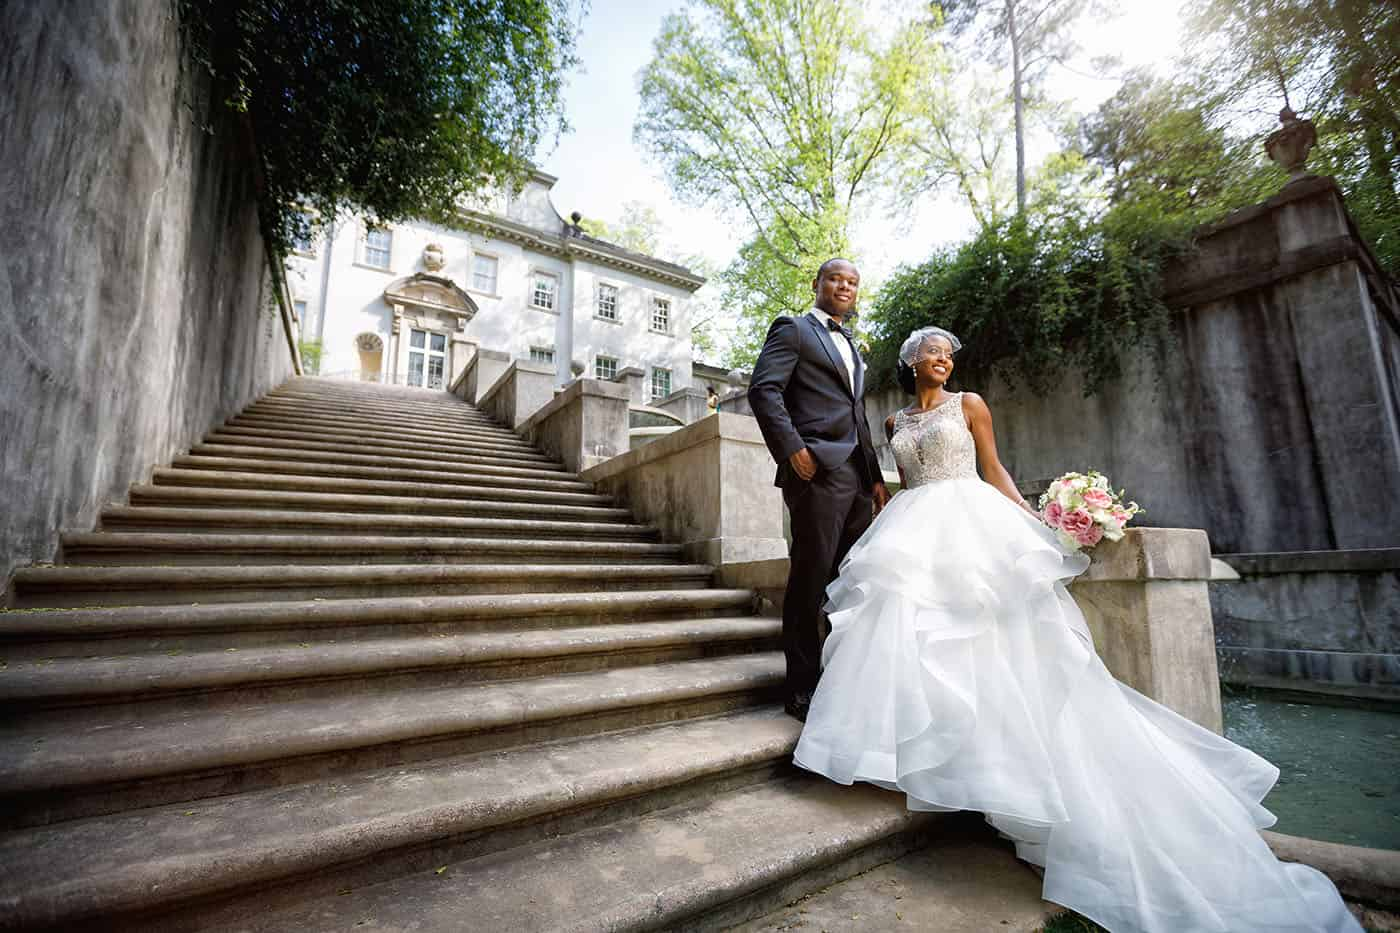 This is the Key to Amazing Client Relationships | A bride and groom pose on the broad stone staircase that leads up to the Atlanta History Center's Swan Mansion.